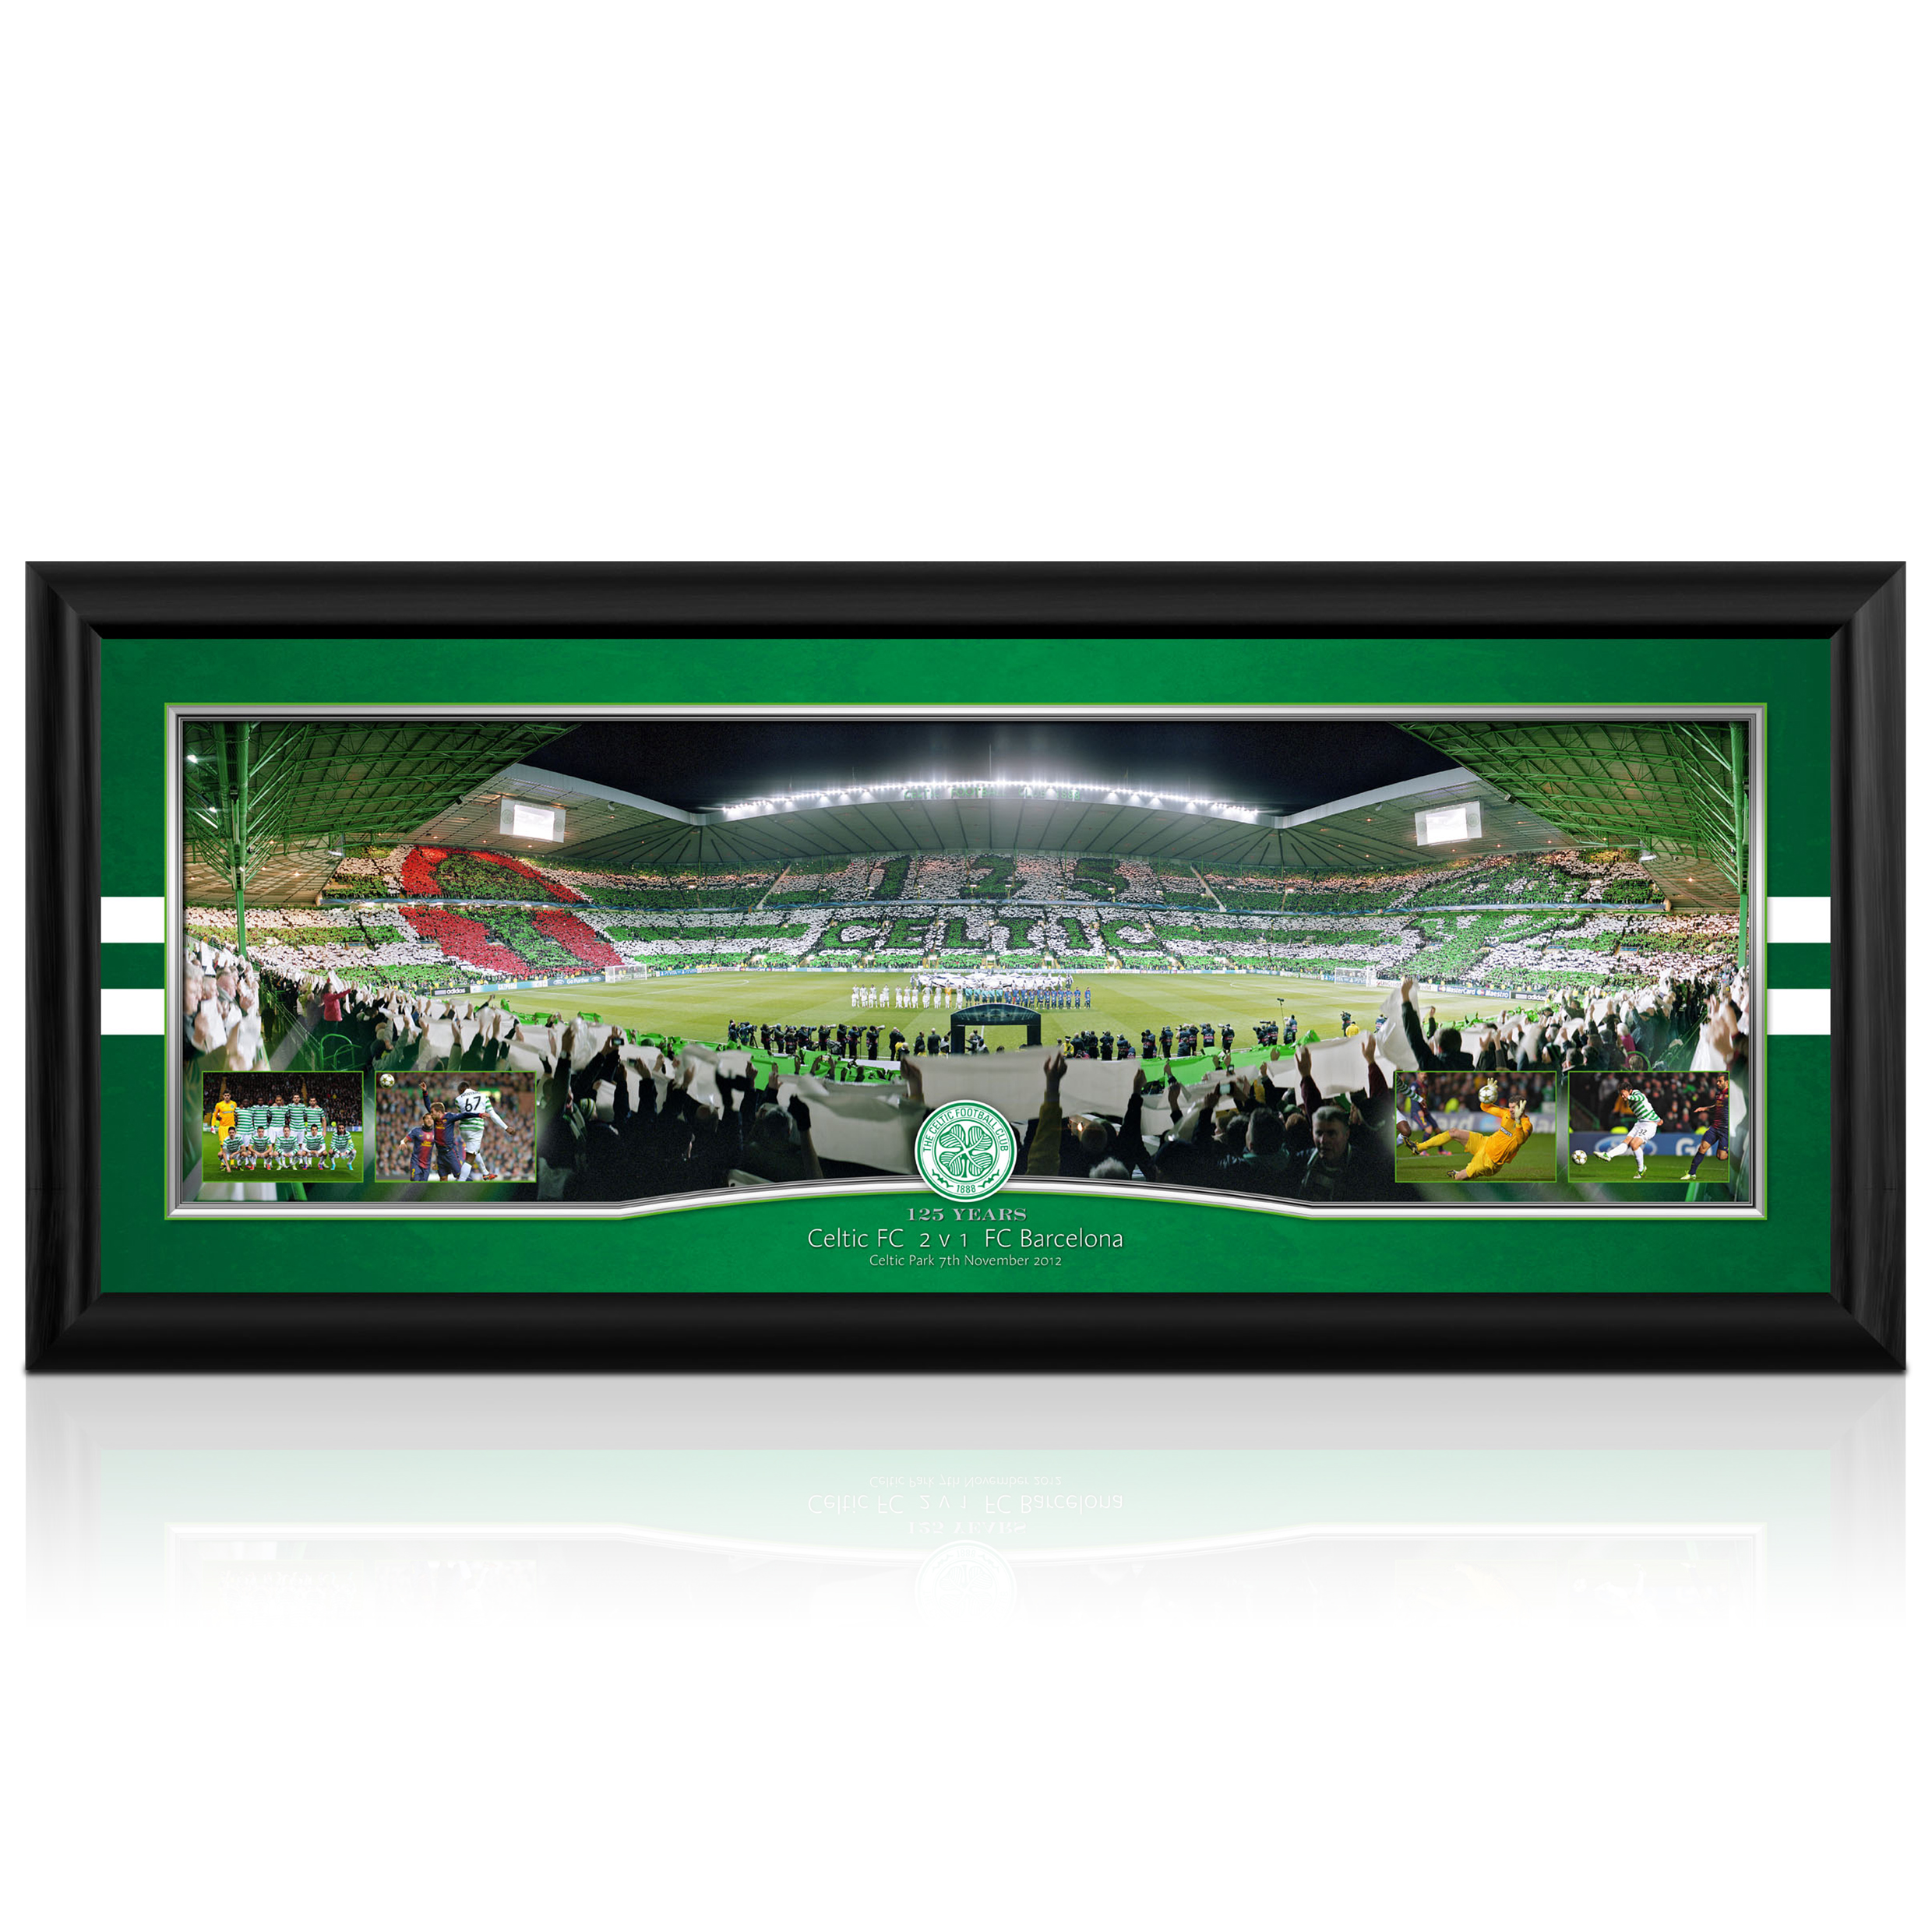 Celtic v Barcelona Panoramic Stadium Image - Framed